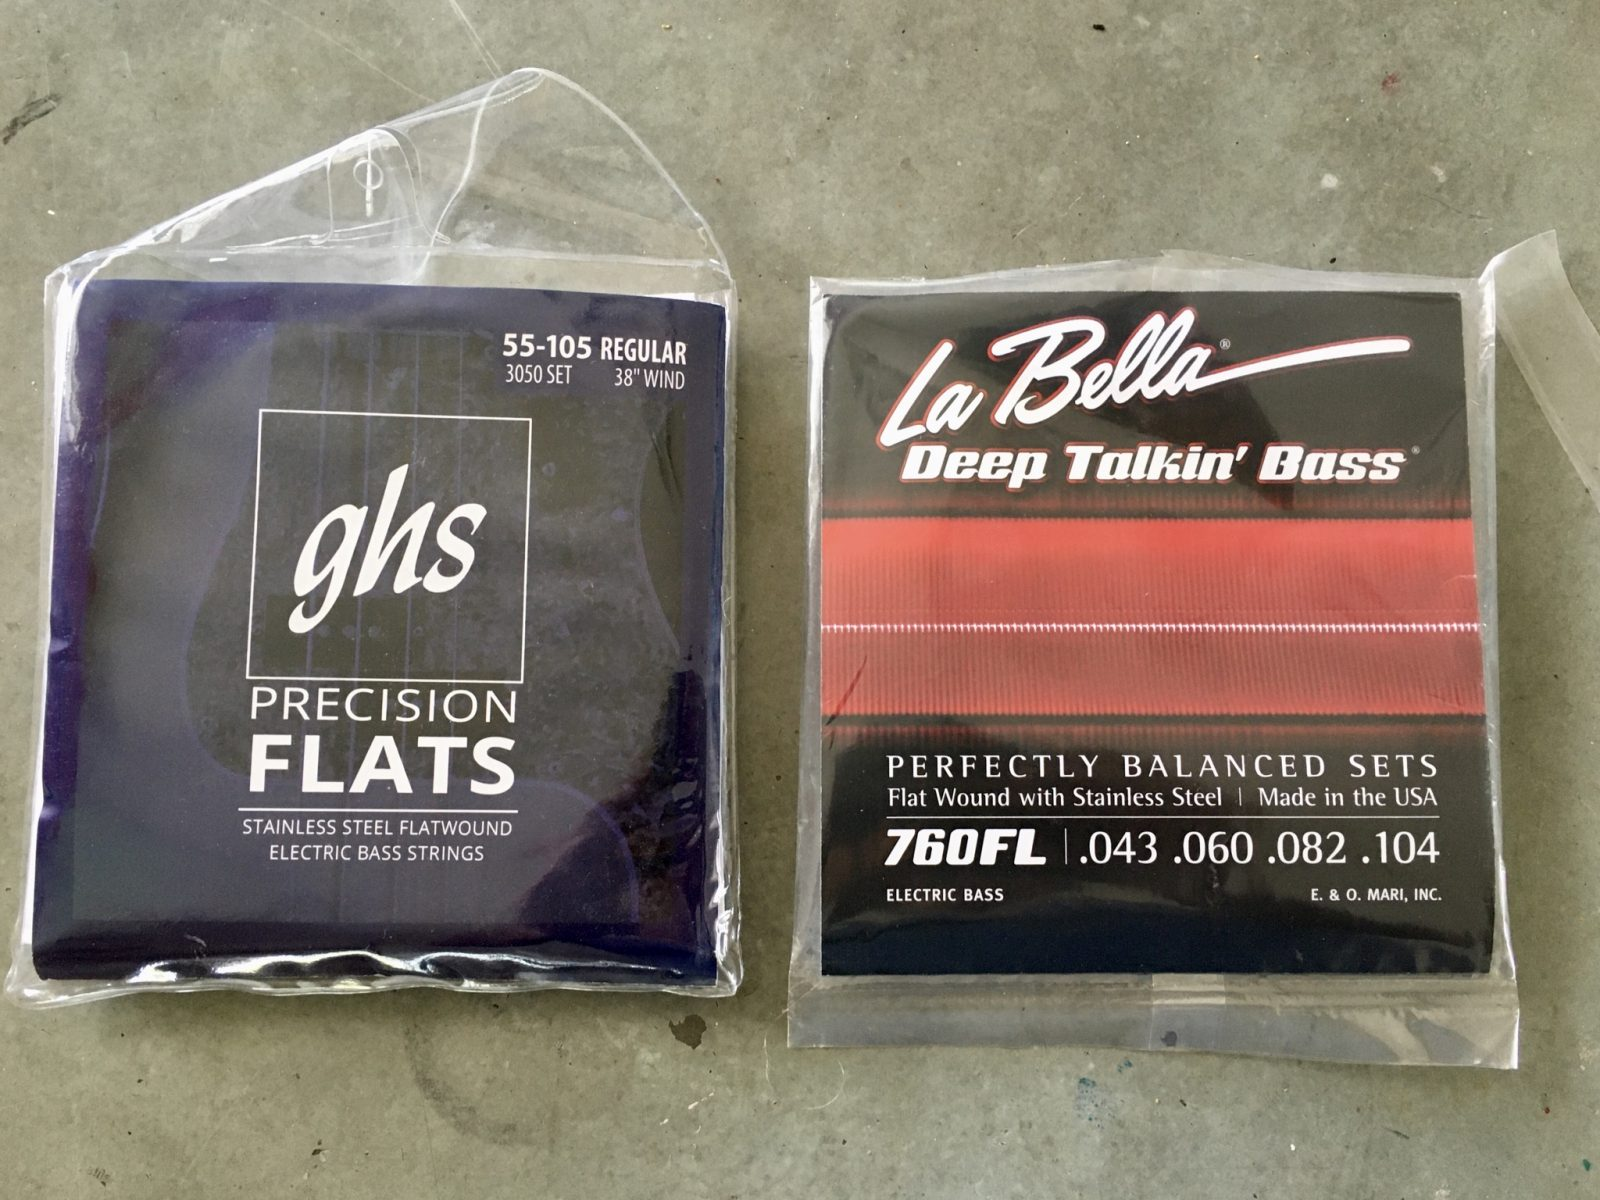 GHS Precision Flatwounds vs LaBella 760FL's